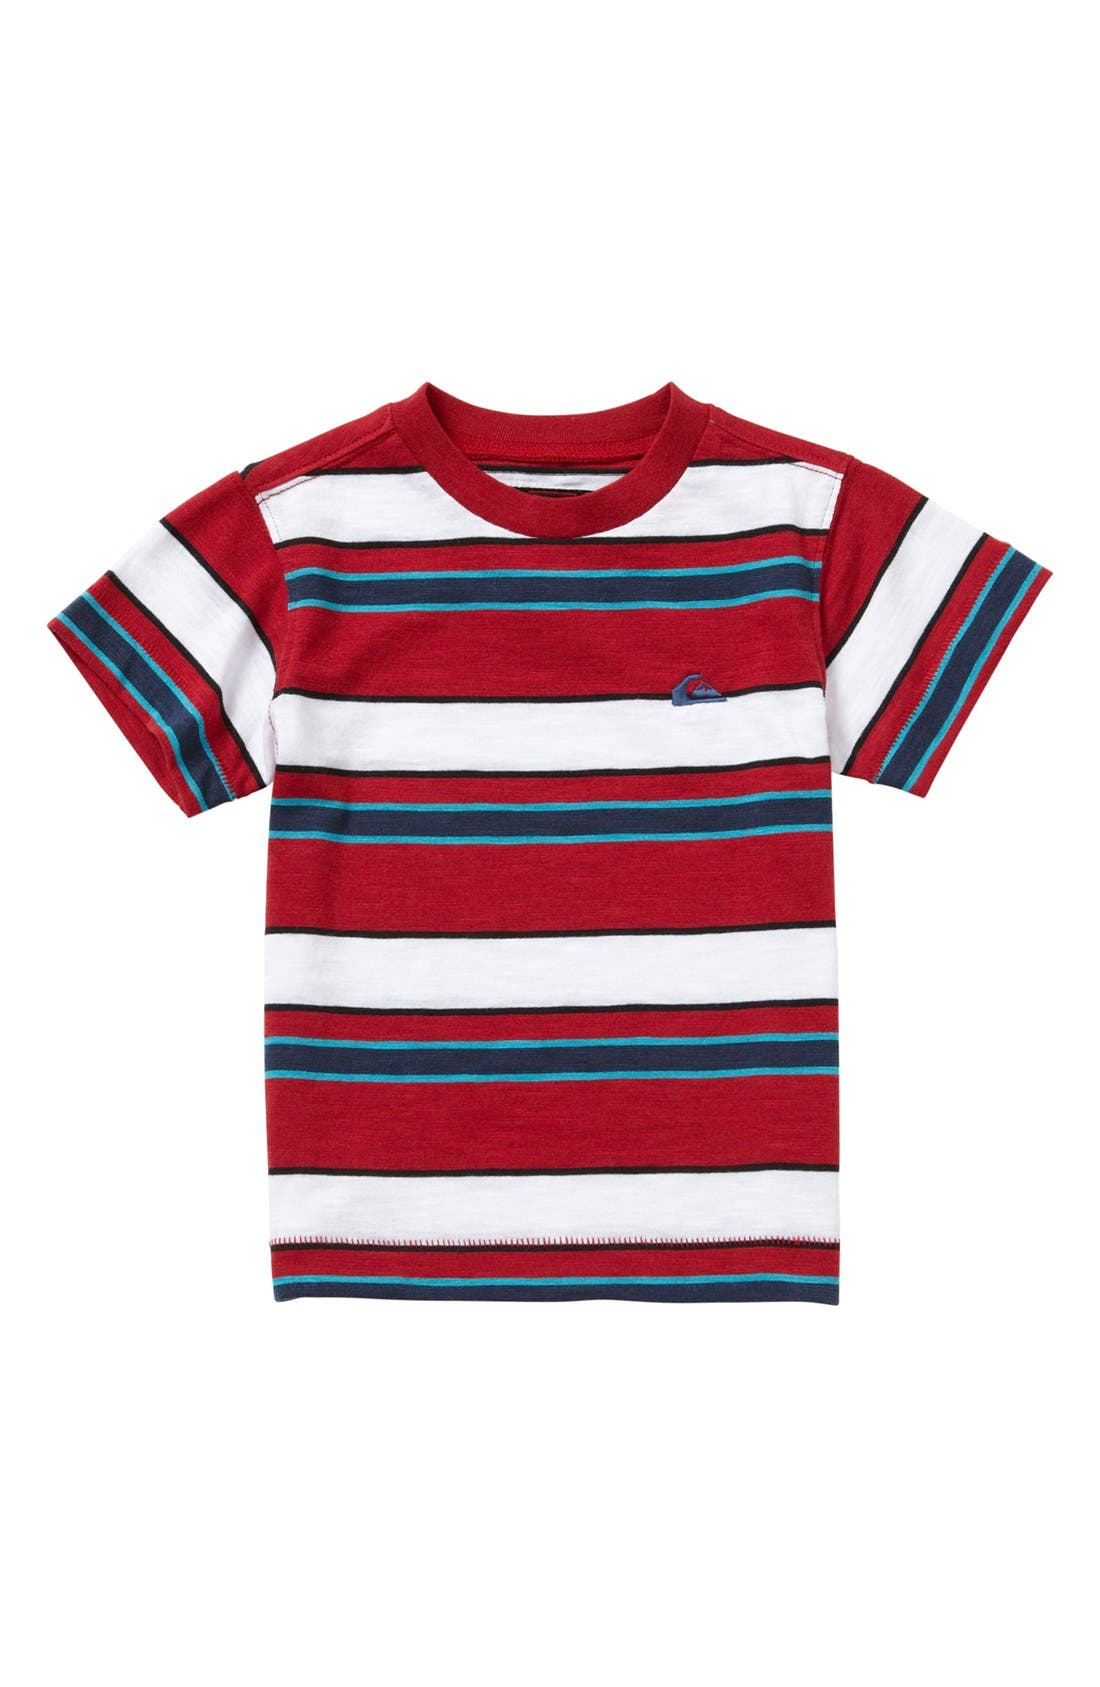 Main Image - Quiksilver 'Eld Street' T-Shirt (Baby Boys)